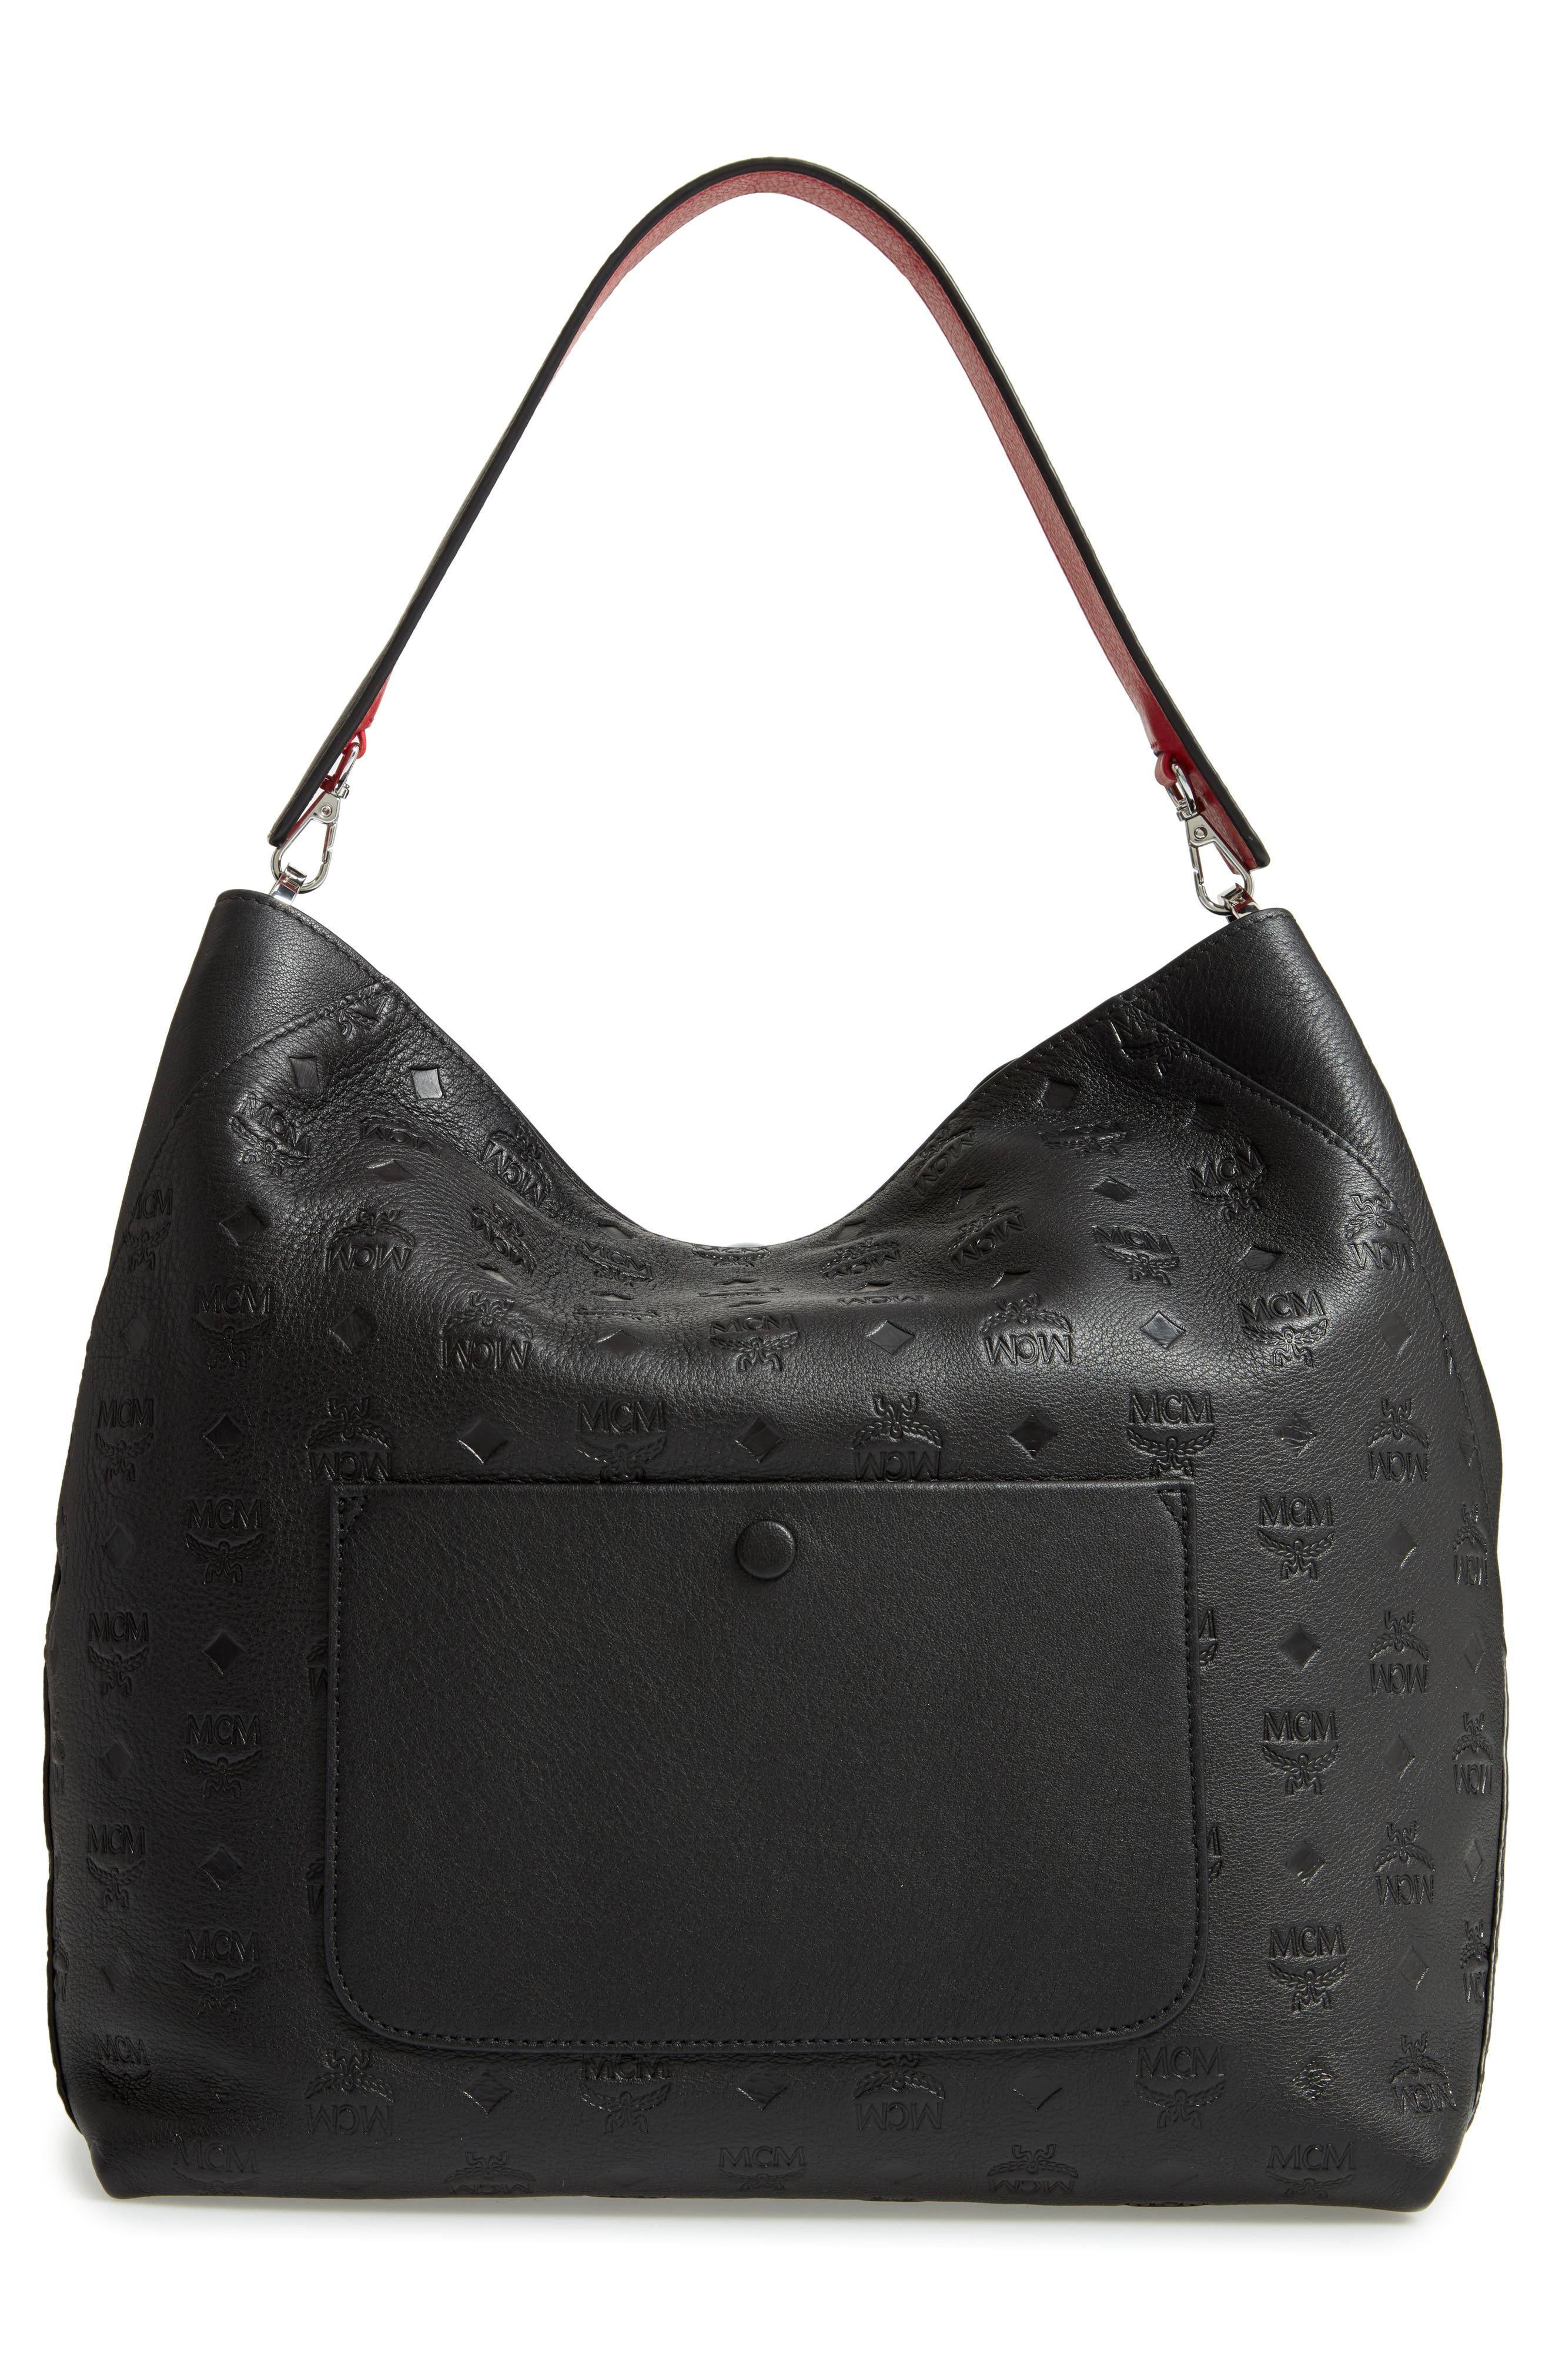 Klara Monogrammed Leather Hobo Bag,                             Alternate thumbnail 4, color,                             001